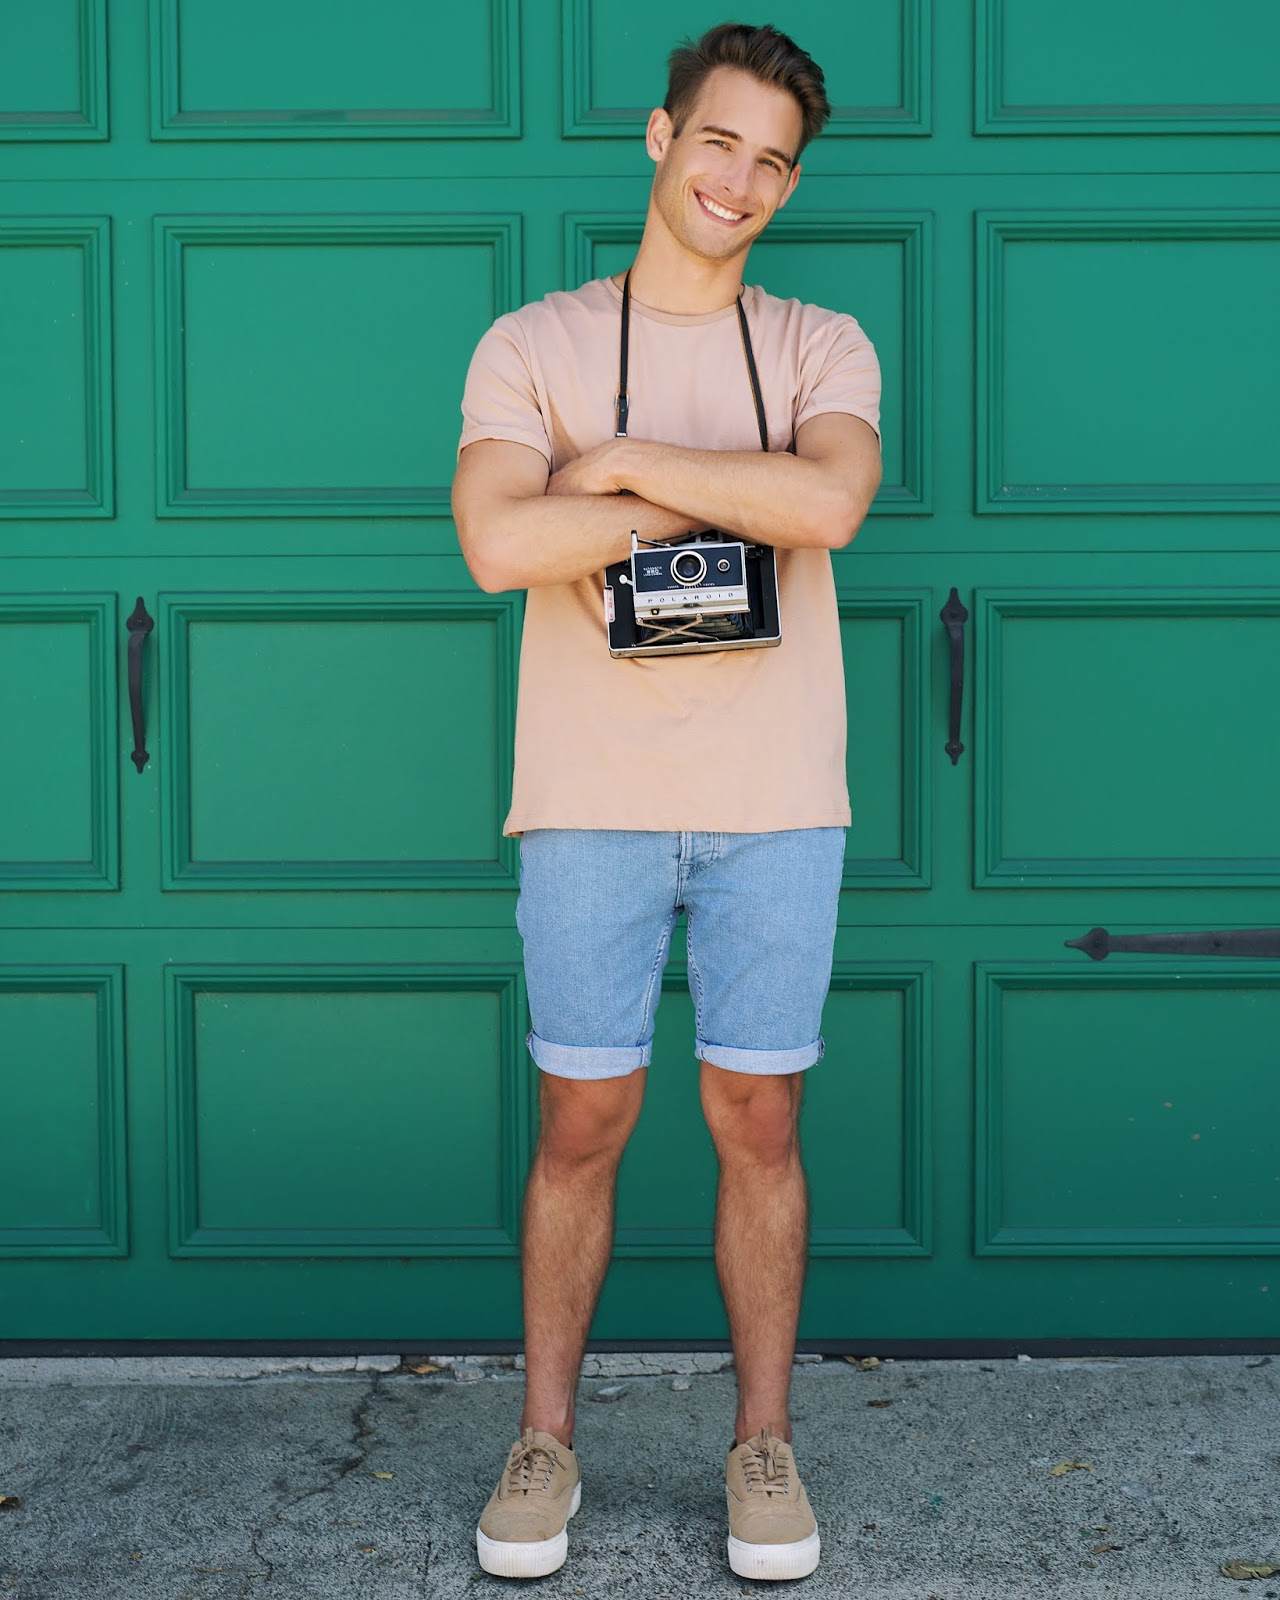 Shorts For Summer 2018 For Men (www.wastedhypeblog.com)